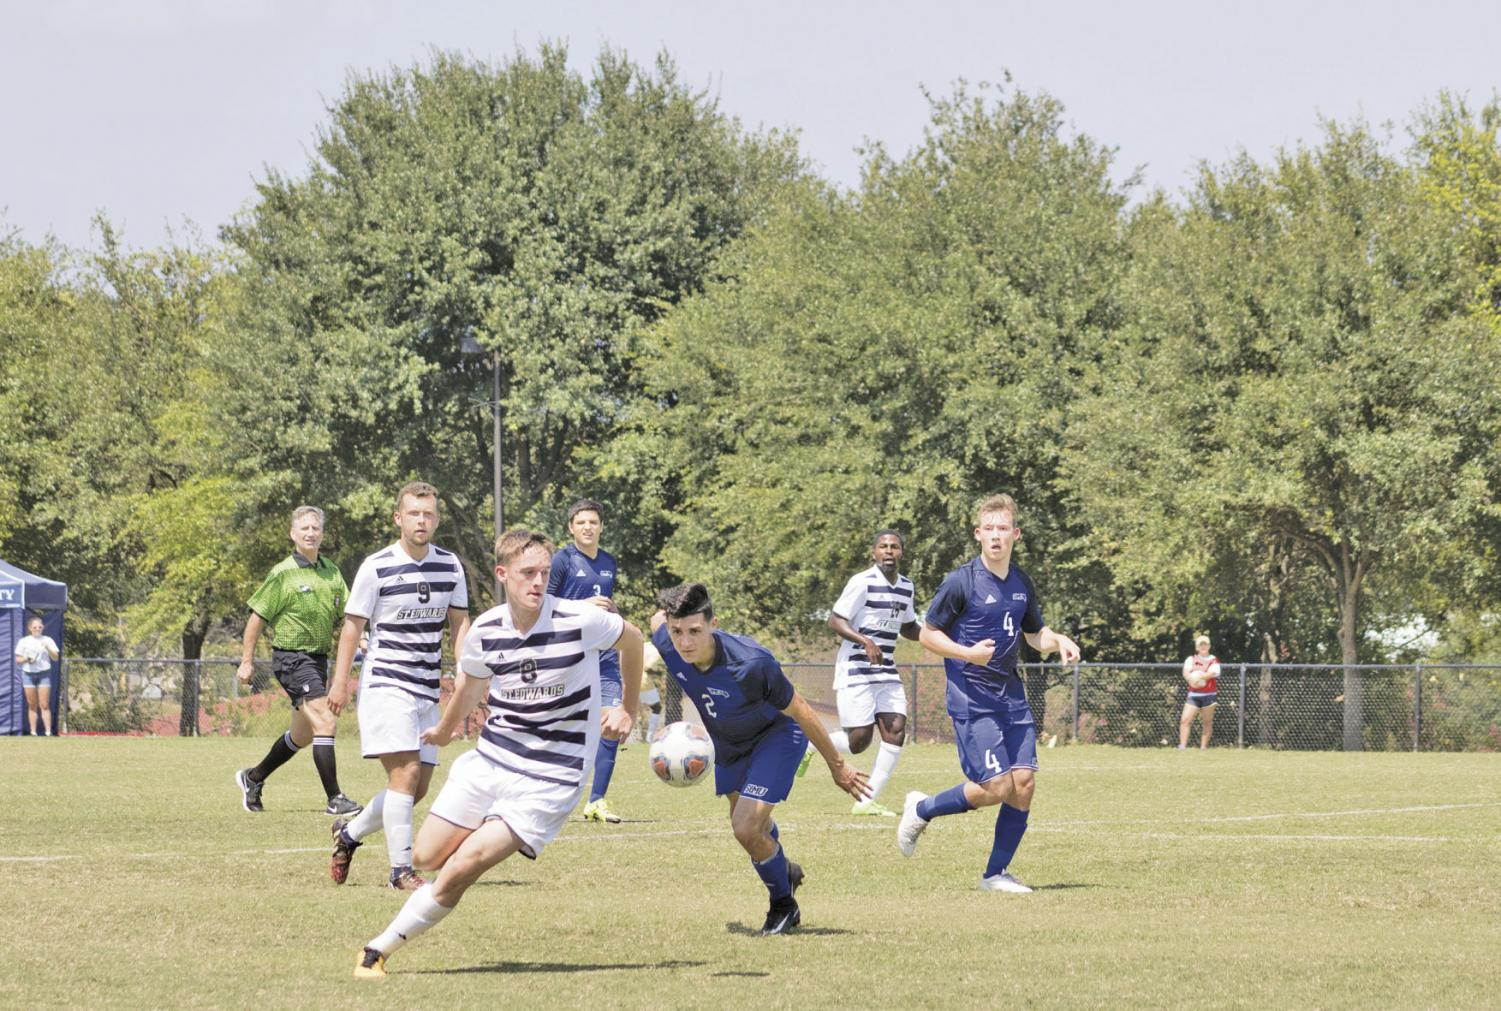 SEU men's soccer is ranked No. 14 in the nation